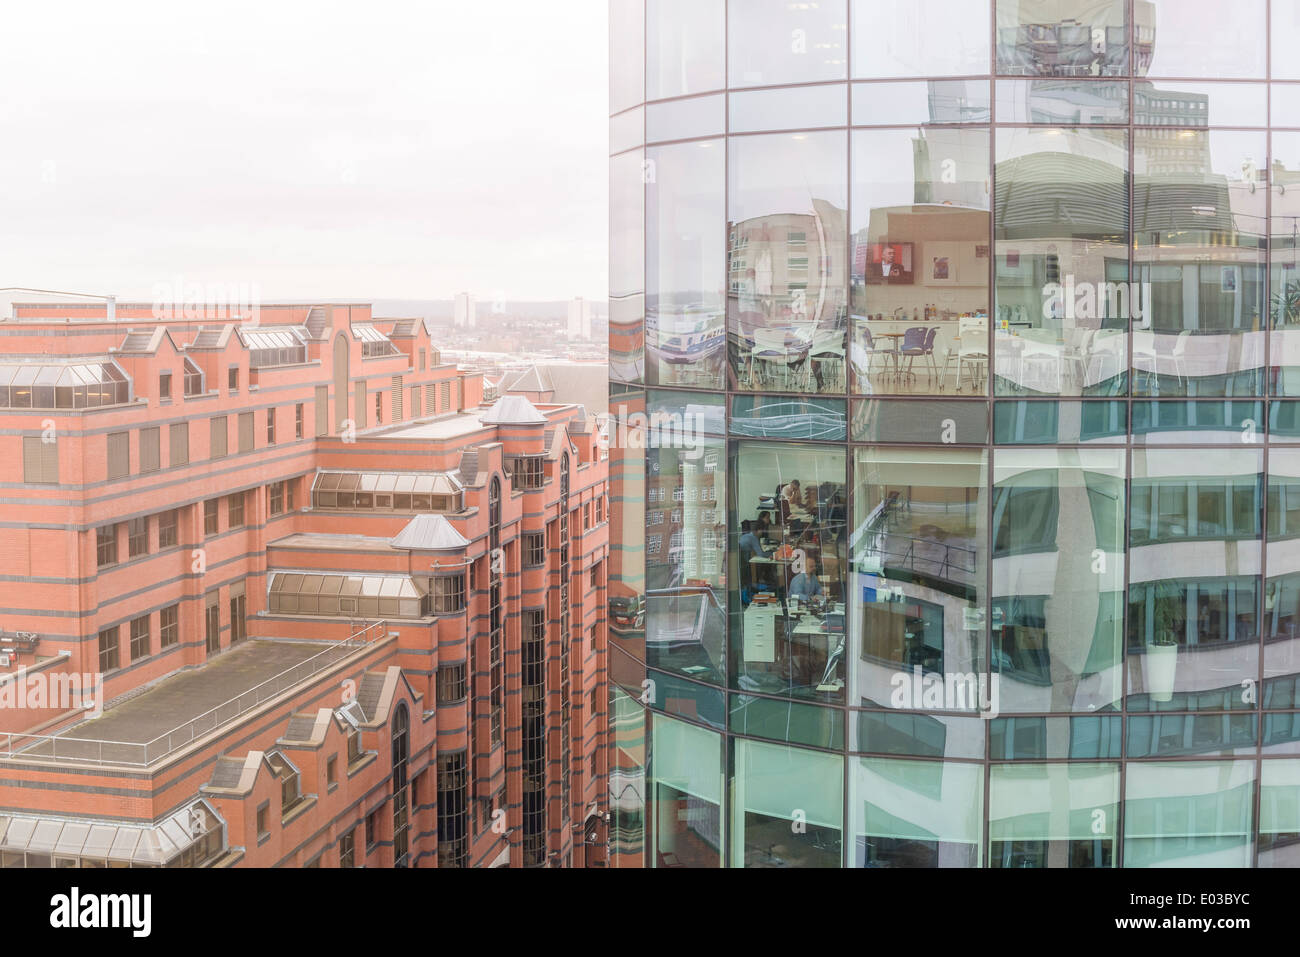 Offices in the Colmore Business District, Financial District of Birmingham, England. - Stock Image